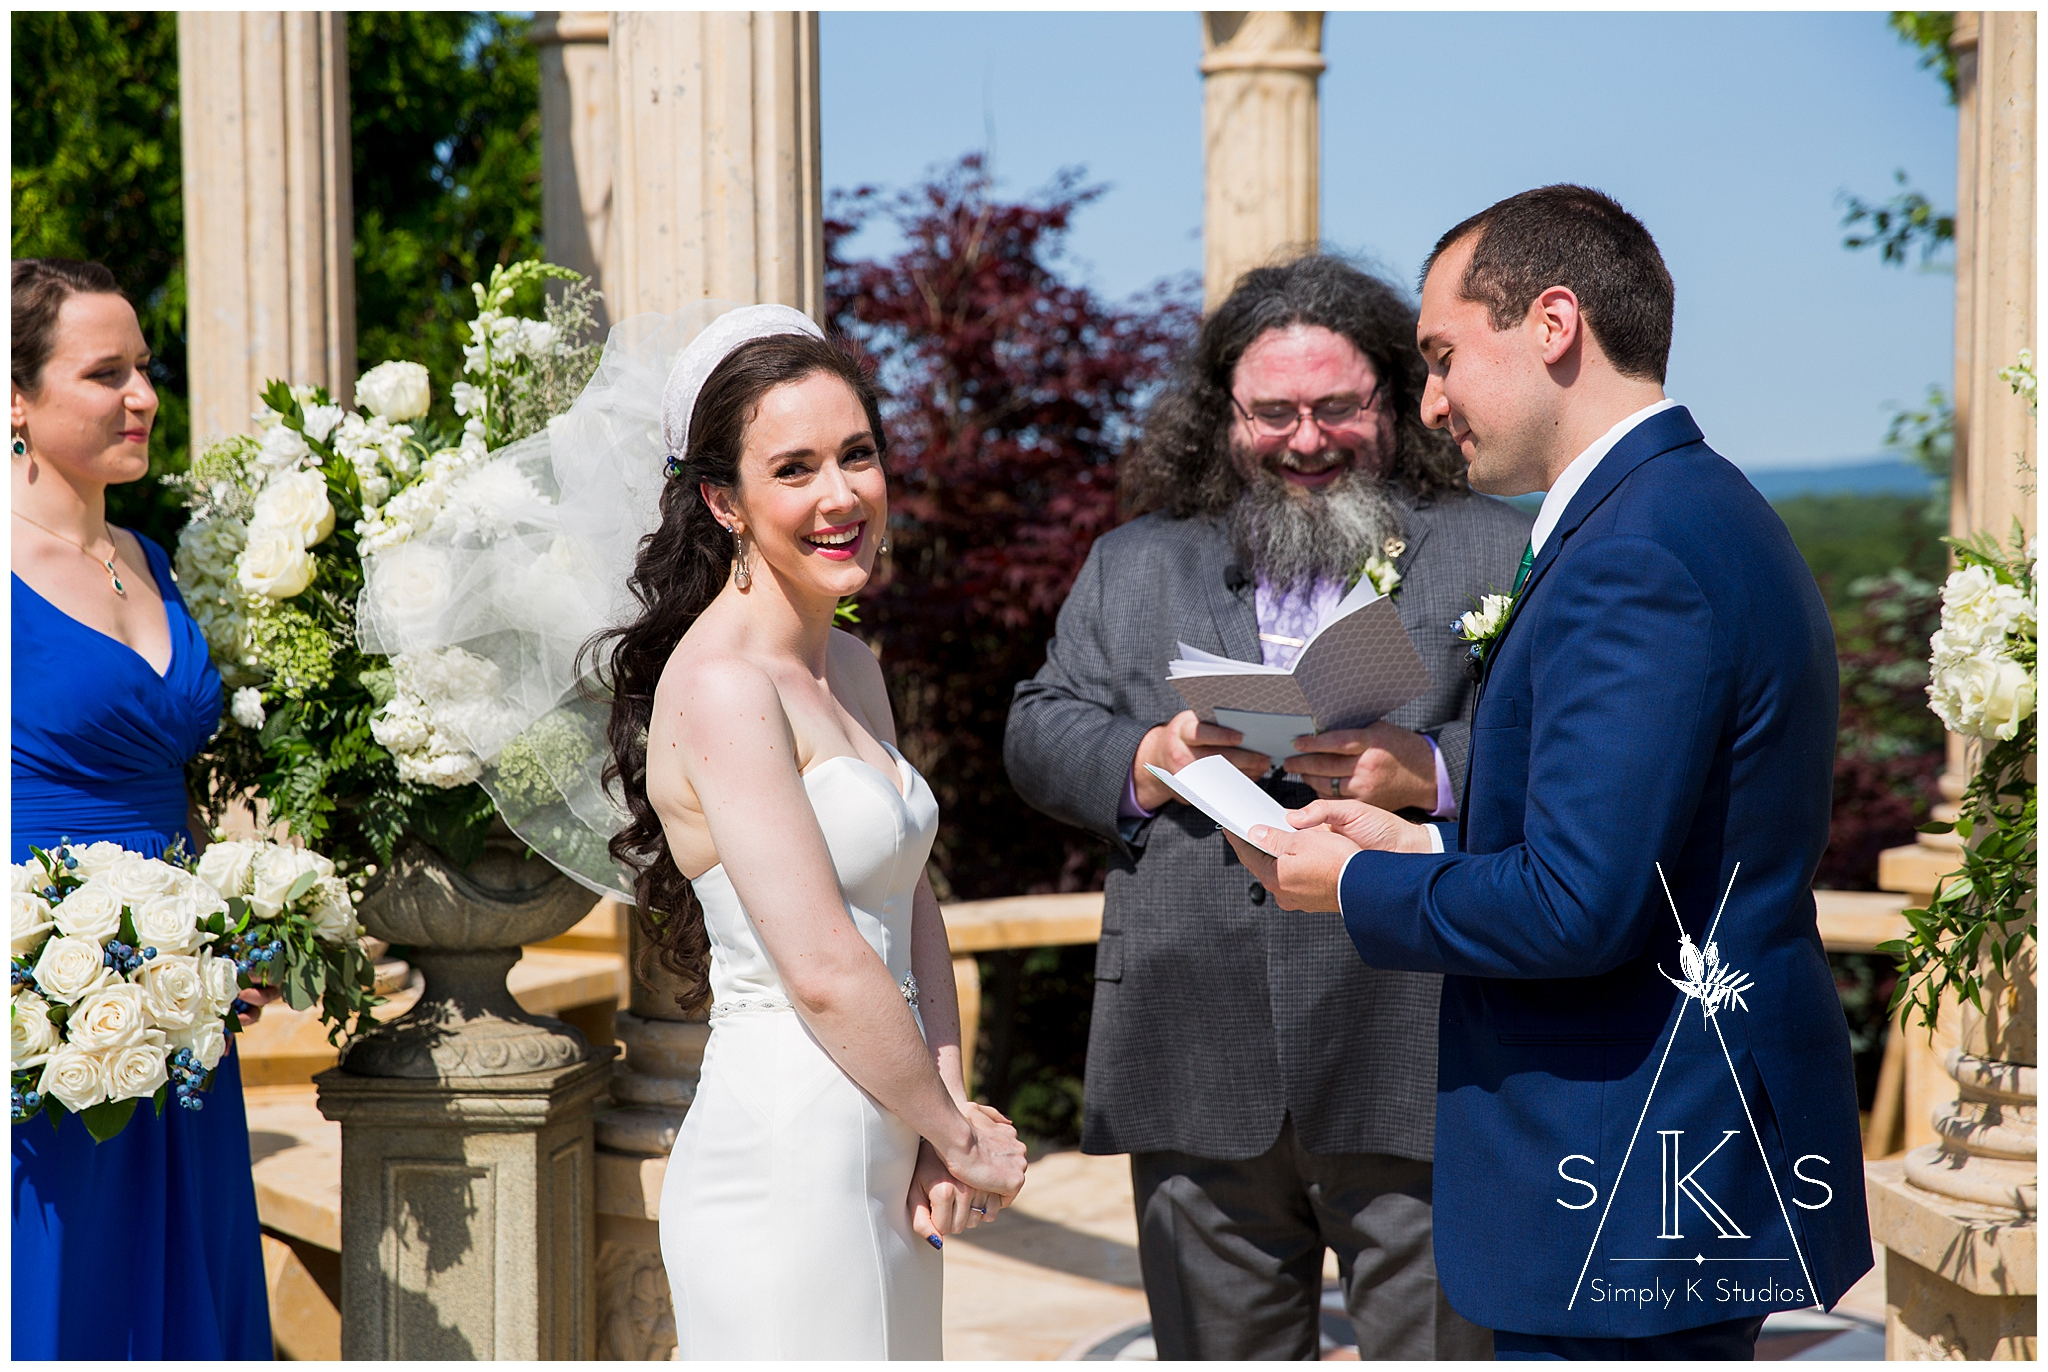 37 Candid Wedding Photography in Connecticut.jpg